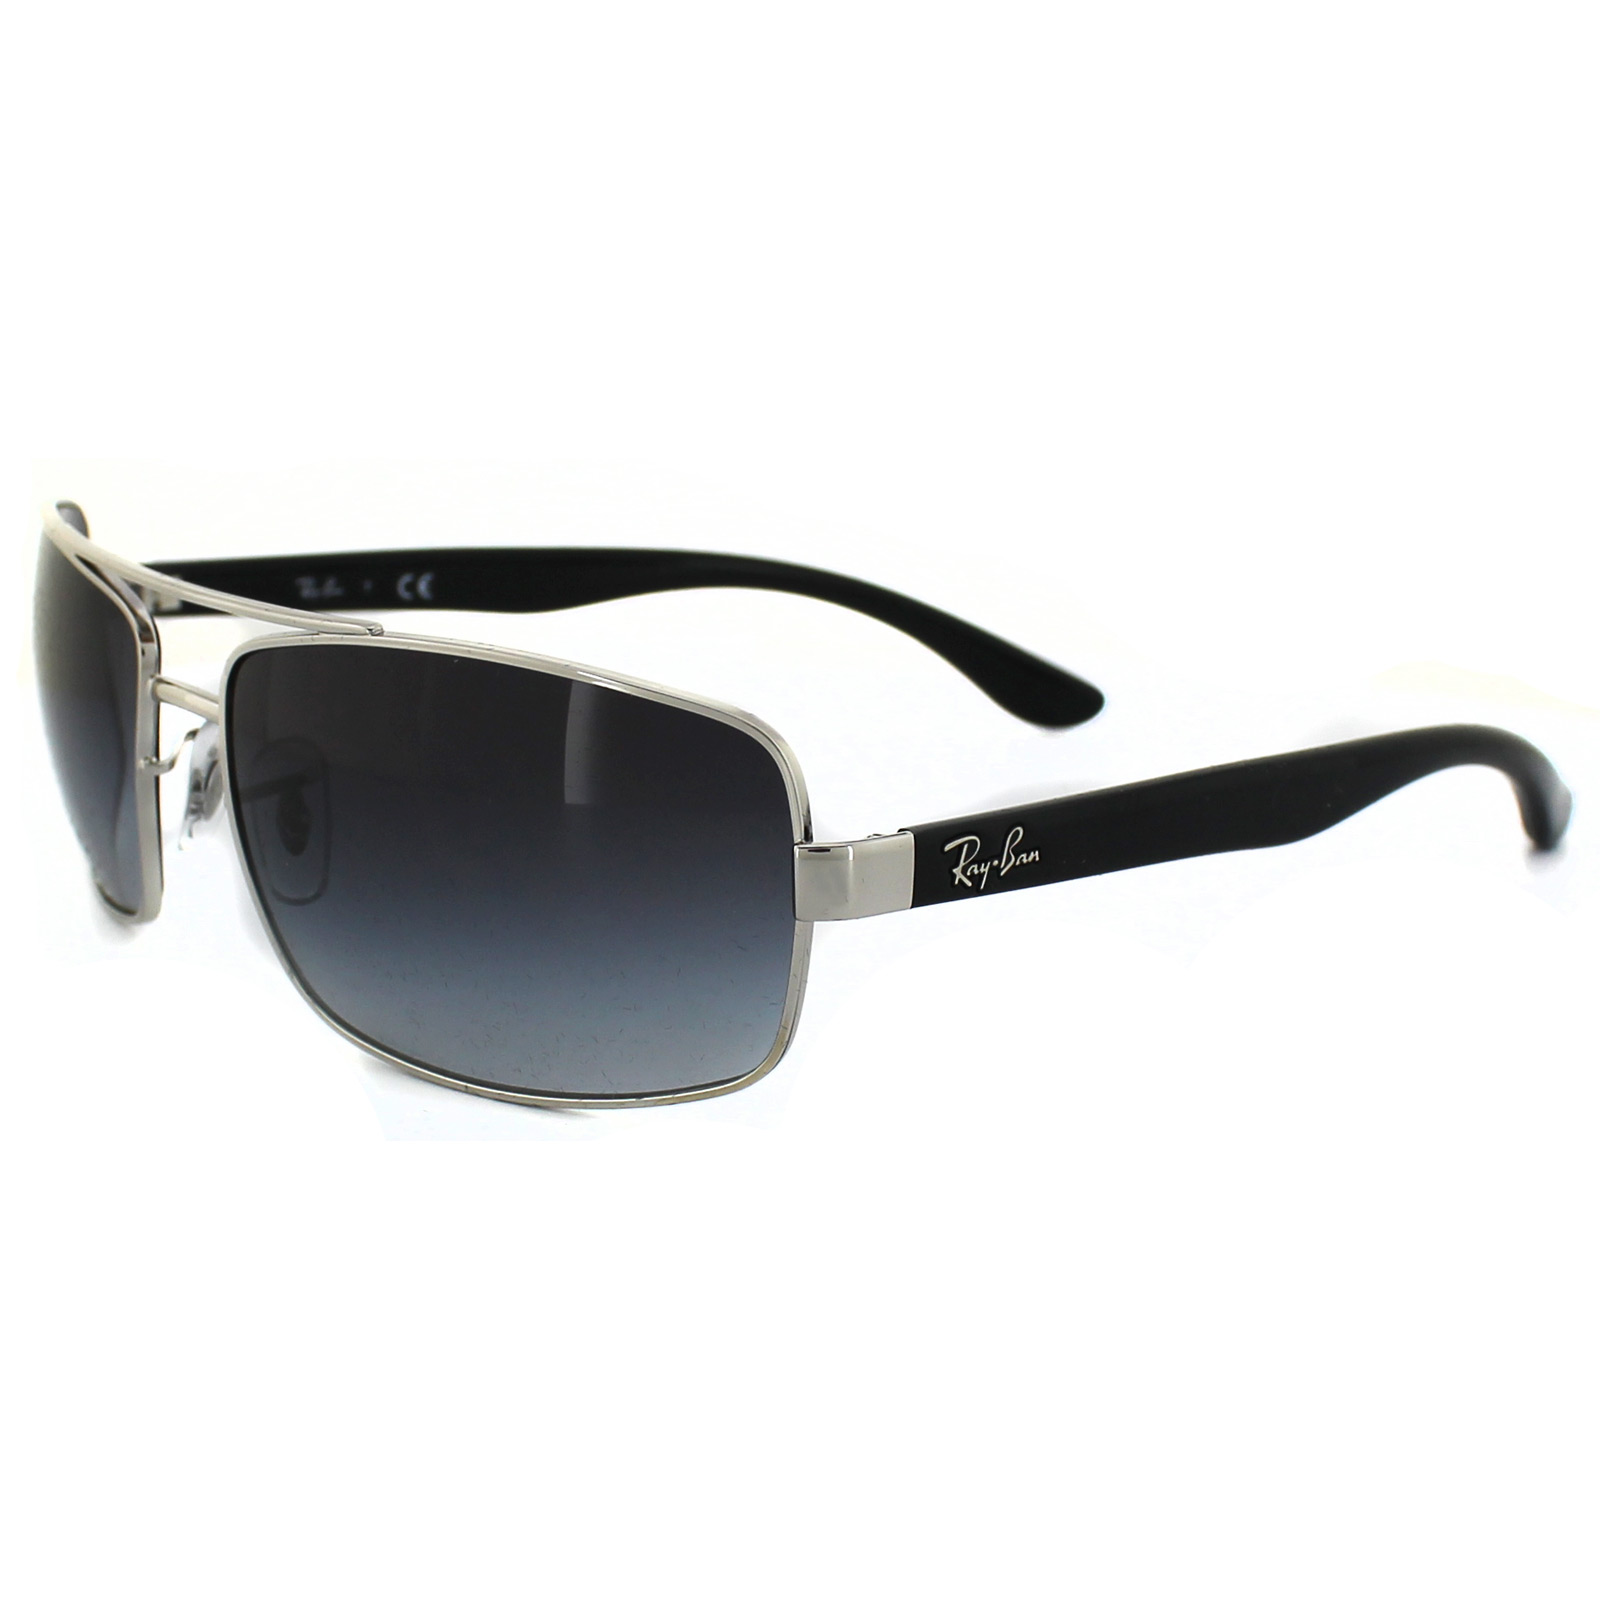 cheap ray bans uk  Cheap Ray-Ban 3458 Sunglasses - Discounted Sunglasses